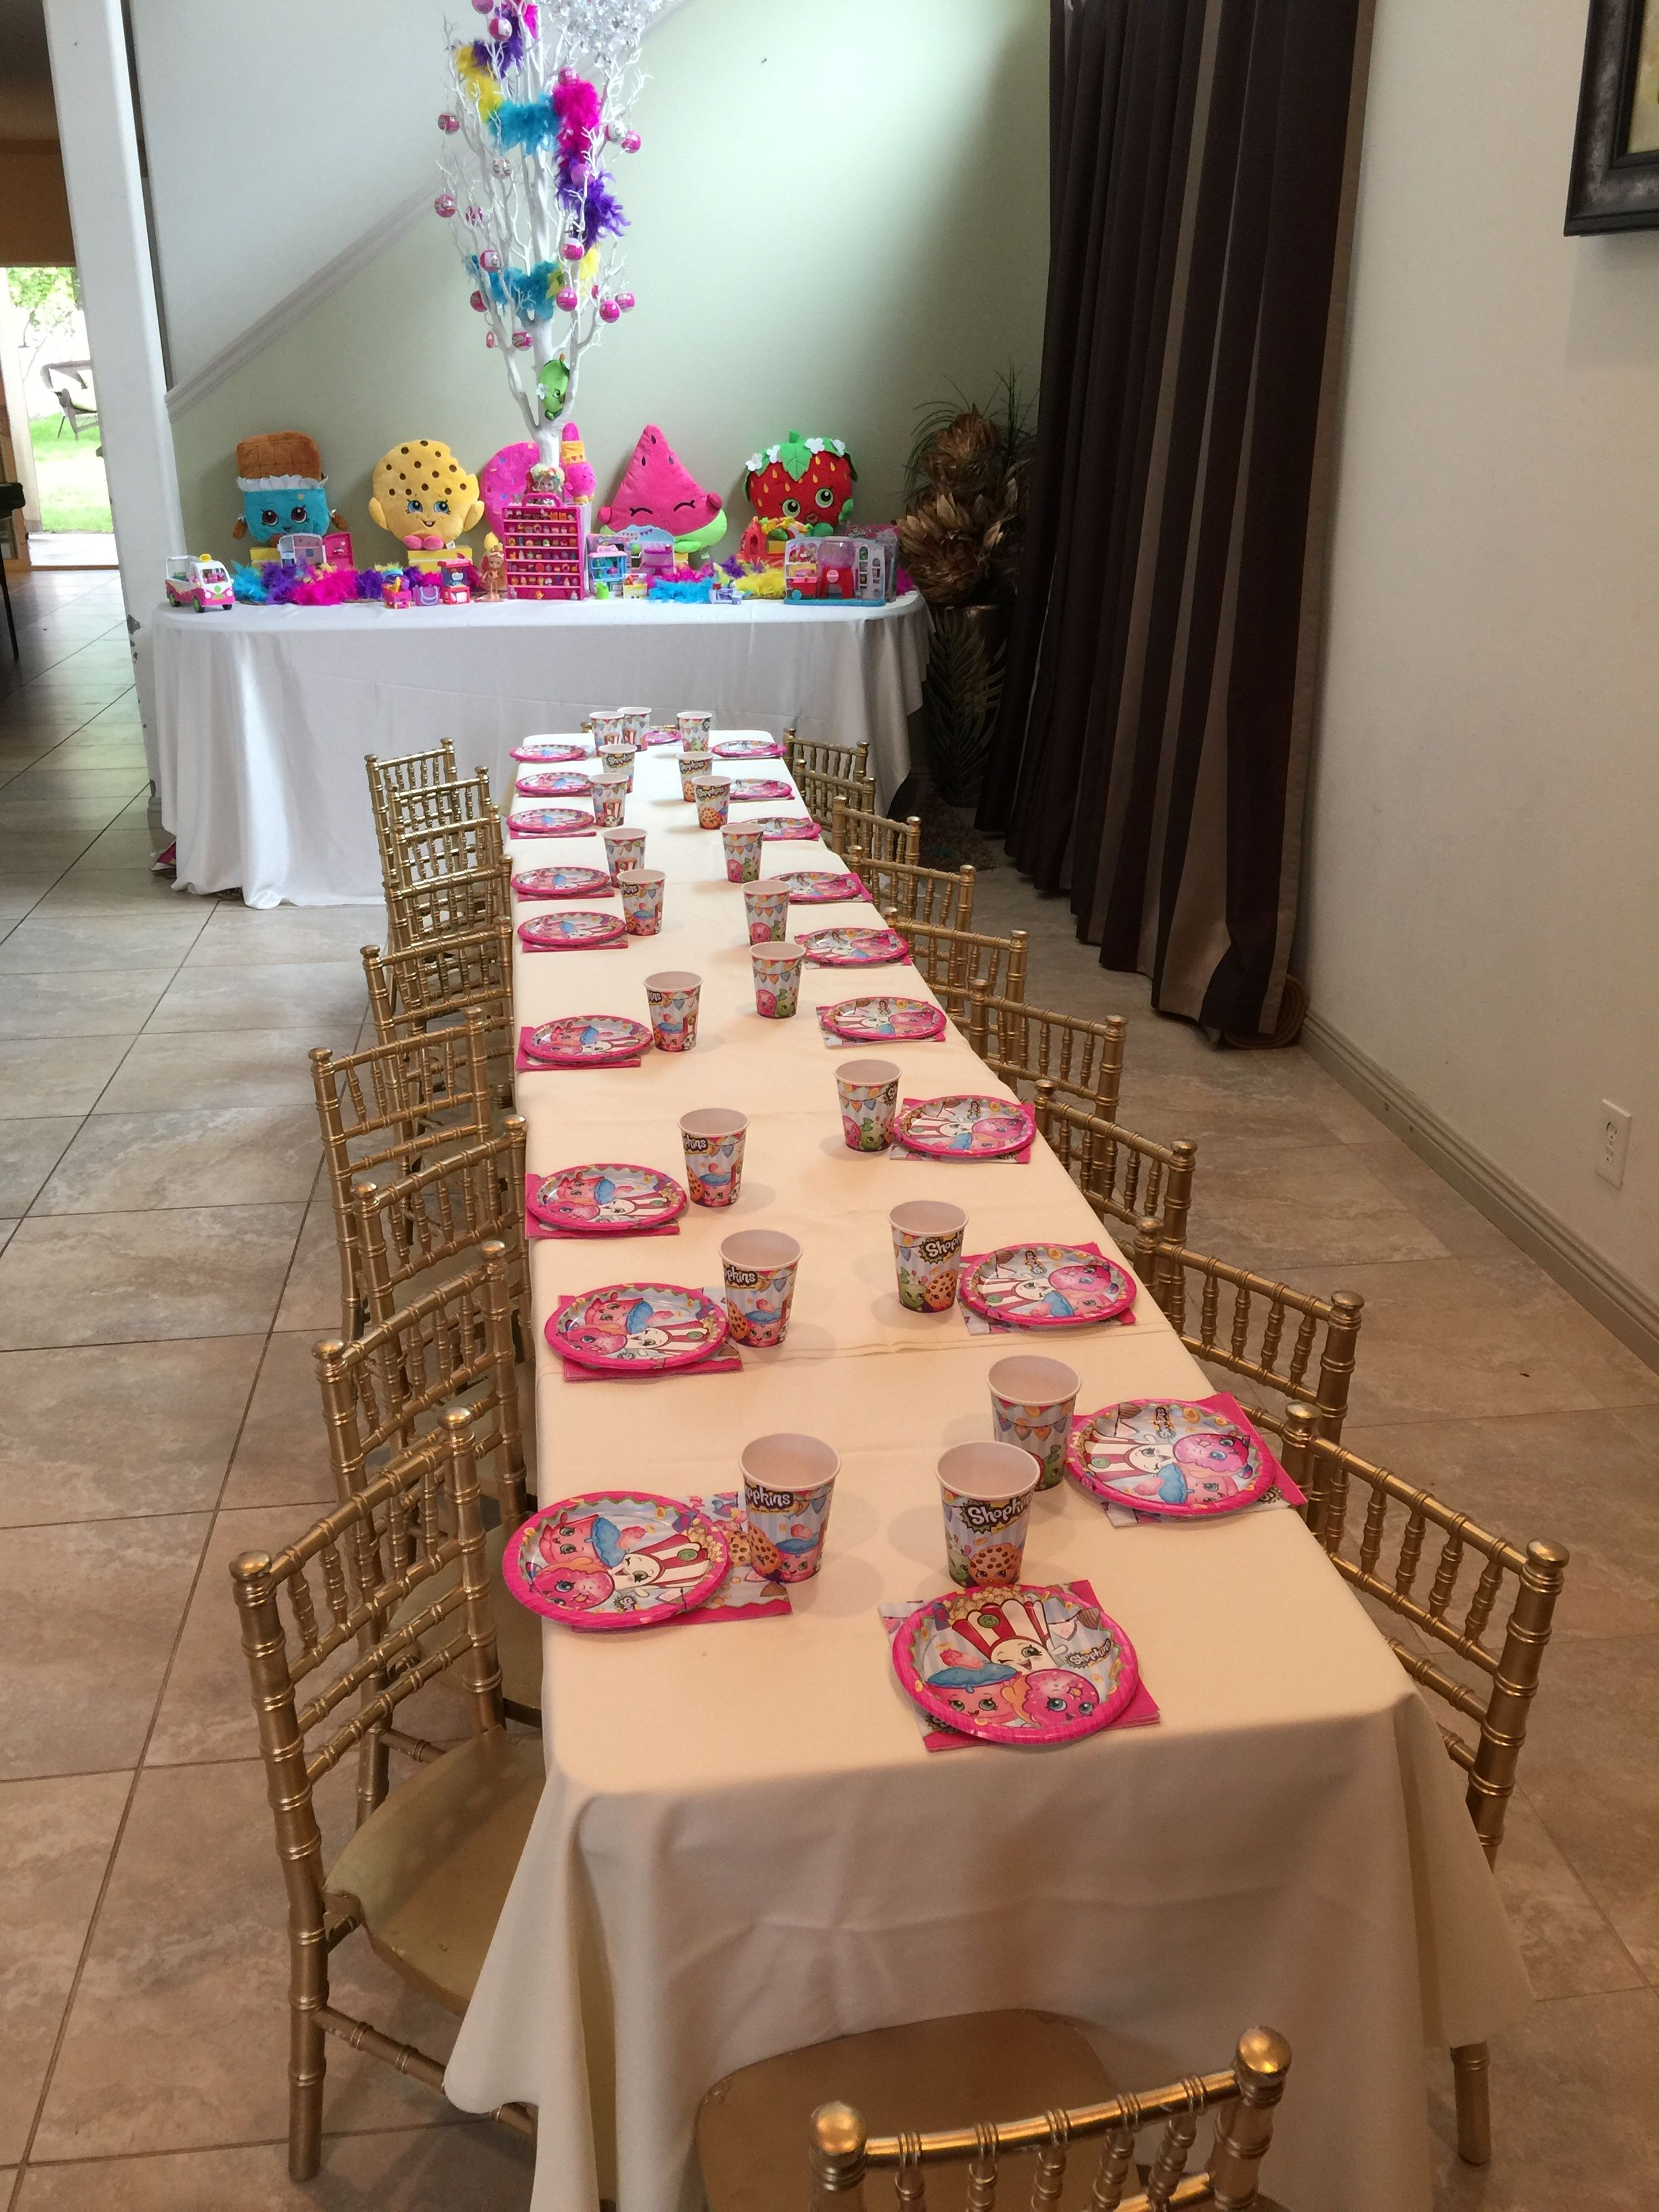 Birthday party venues in los angeles also you can decide to have an indoor or outdoor the rh pinterest